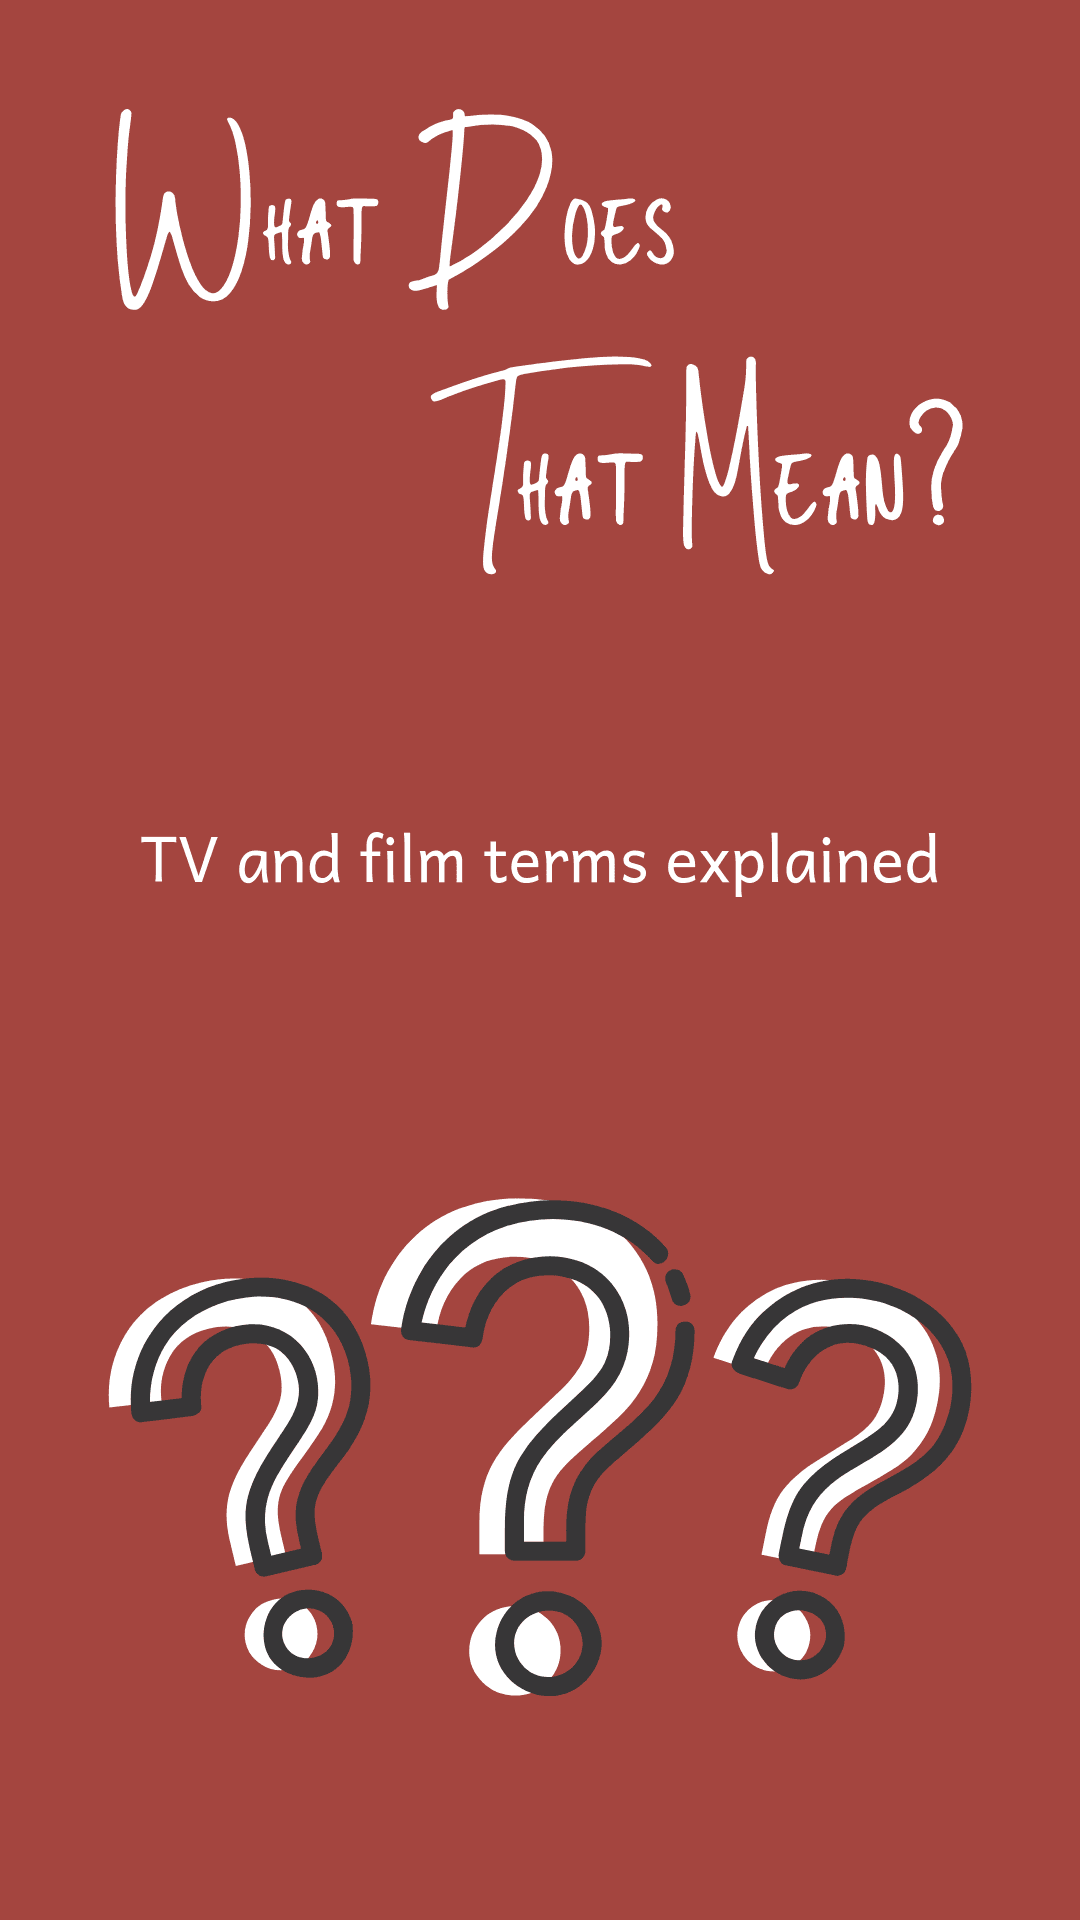 What does that mean - film and video terms explained